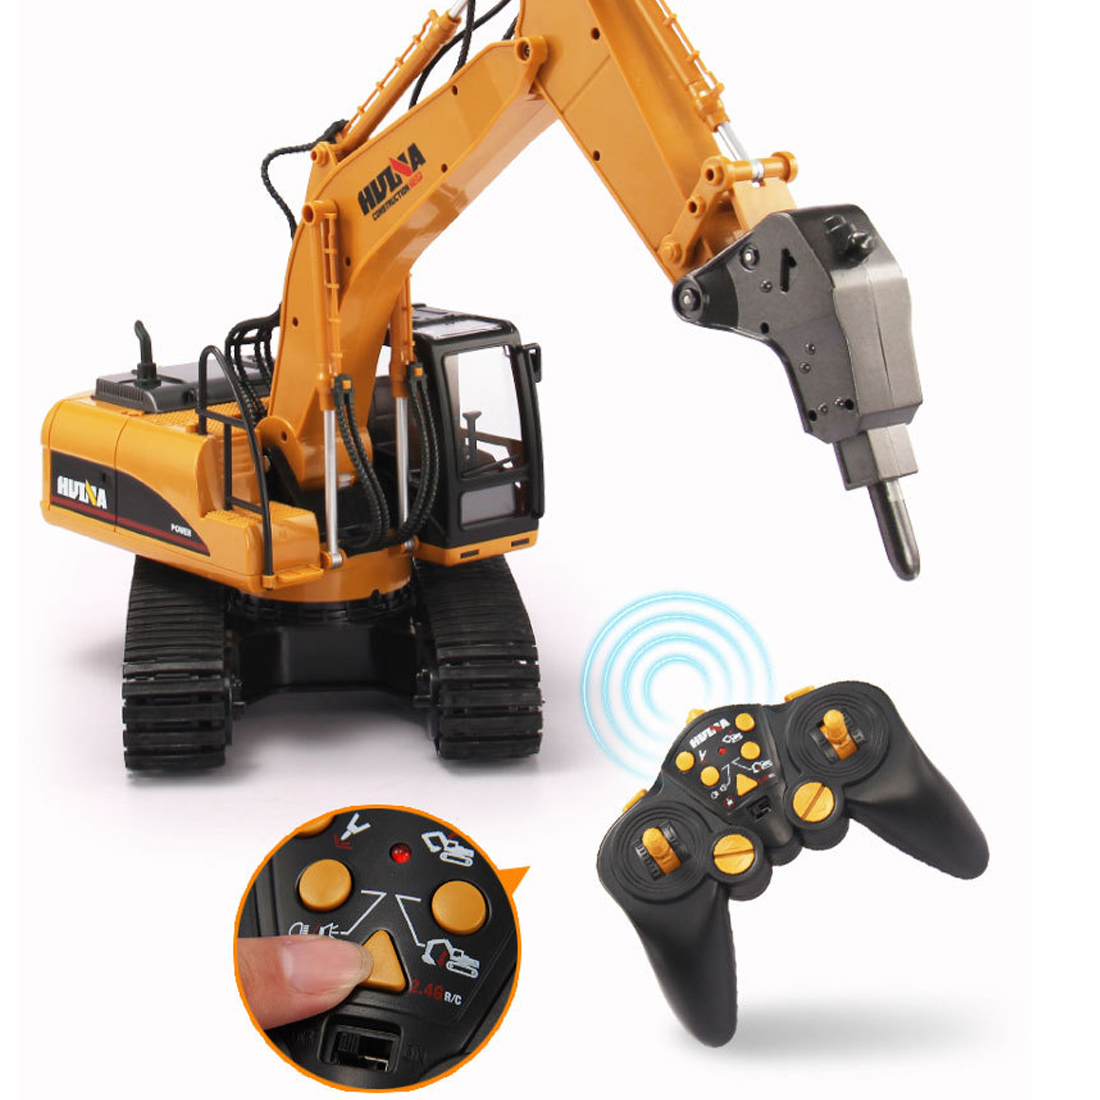 2020 1:14 Remote Control 16CH Drilling Hammer Crusher Car Simulation Engineering Vehicle For Children Gift - Main Brown